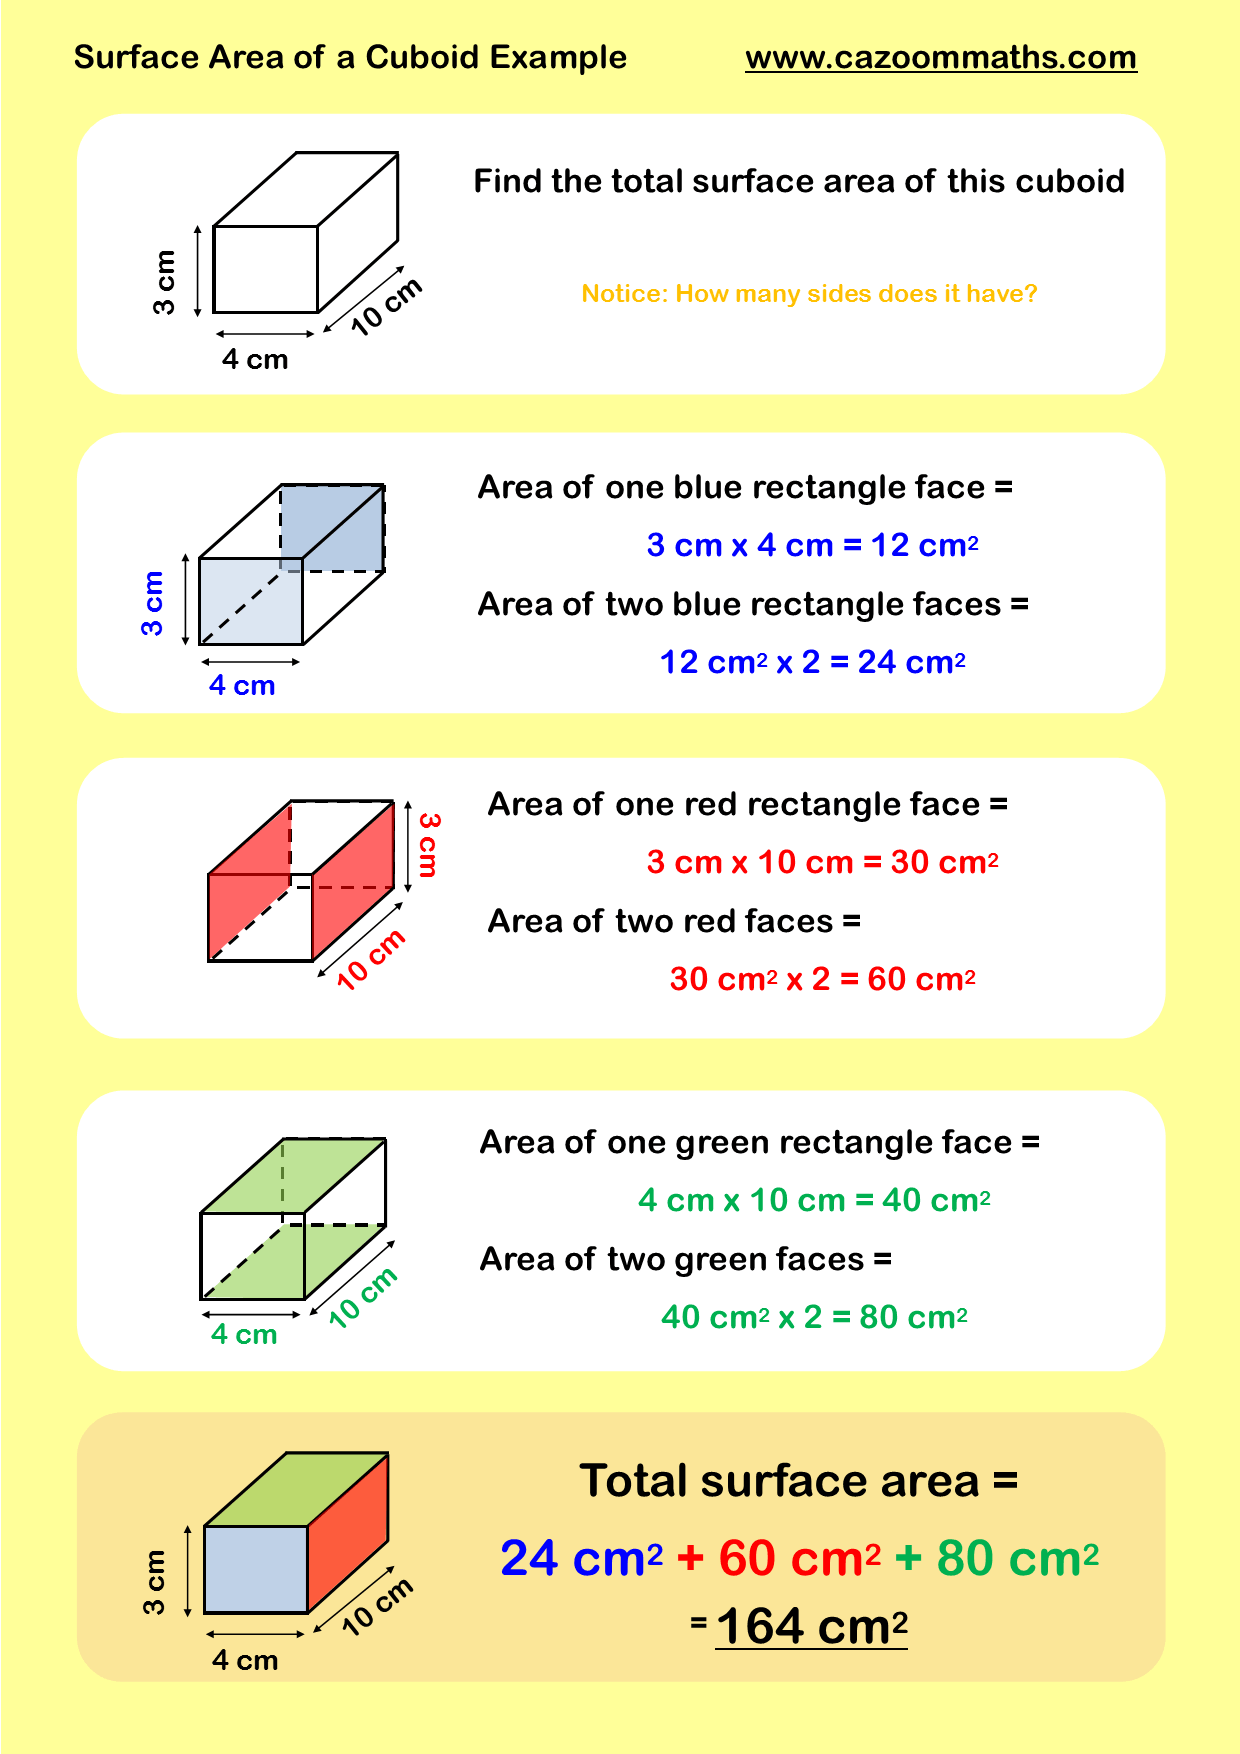 Volume and Surface Area | Cazoom Maths Worksheets